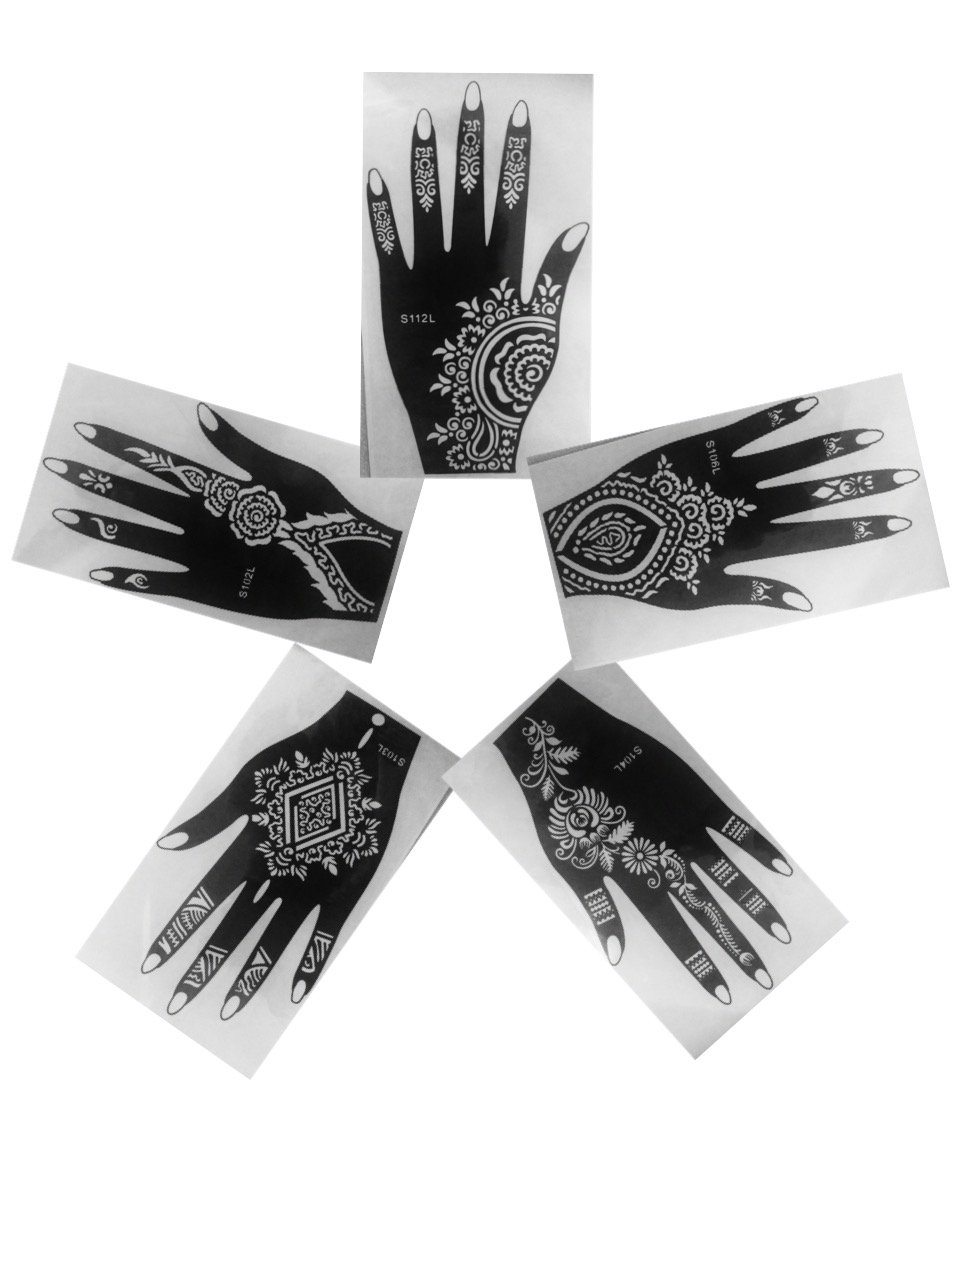 Pack of 5 RIGHT upper part of hand AS SEEN IN VOGUE SIMPLY Indian Arabian Tattoo Reusable Stickers LAMINAU Stencils